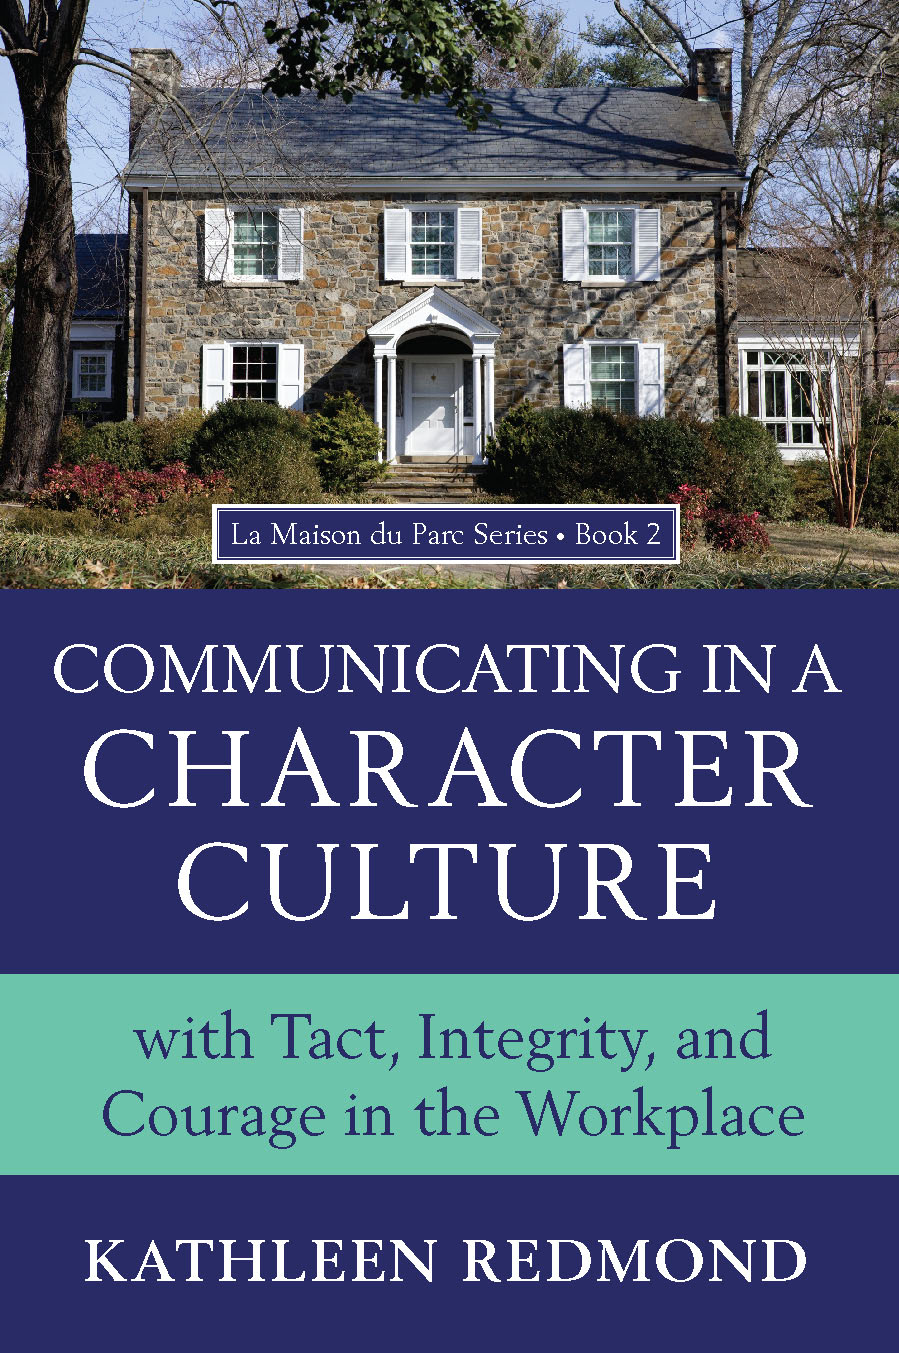 2015-New-Cover-Communicating in a Char. Culture